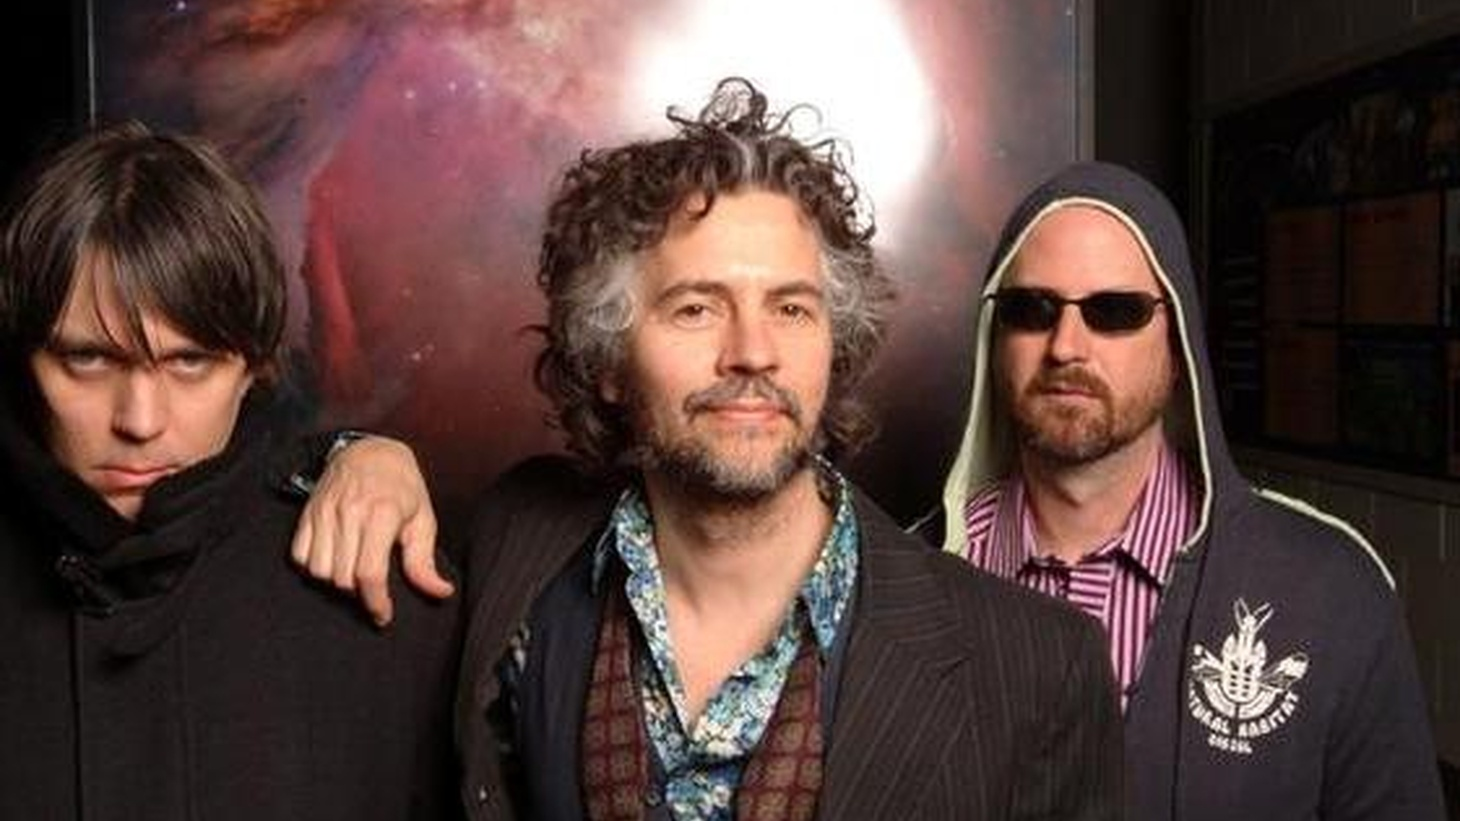 The Flaming Lips return to KCRW with a batch of new songs as we catch up with the art rockers on Morning Becomes Eclectic hosted by Anne Litt at 11:15am.